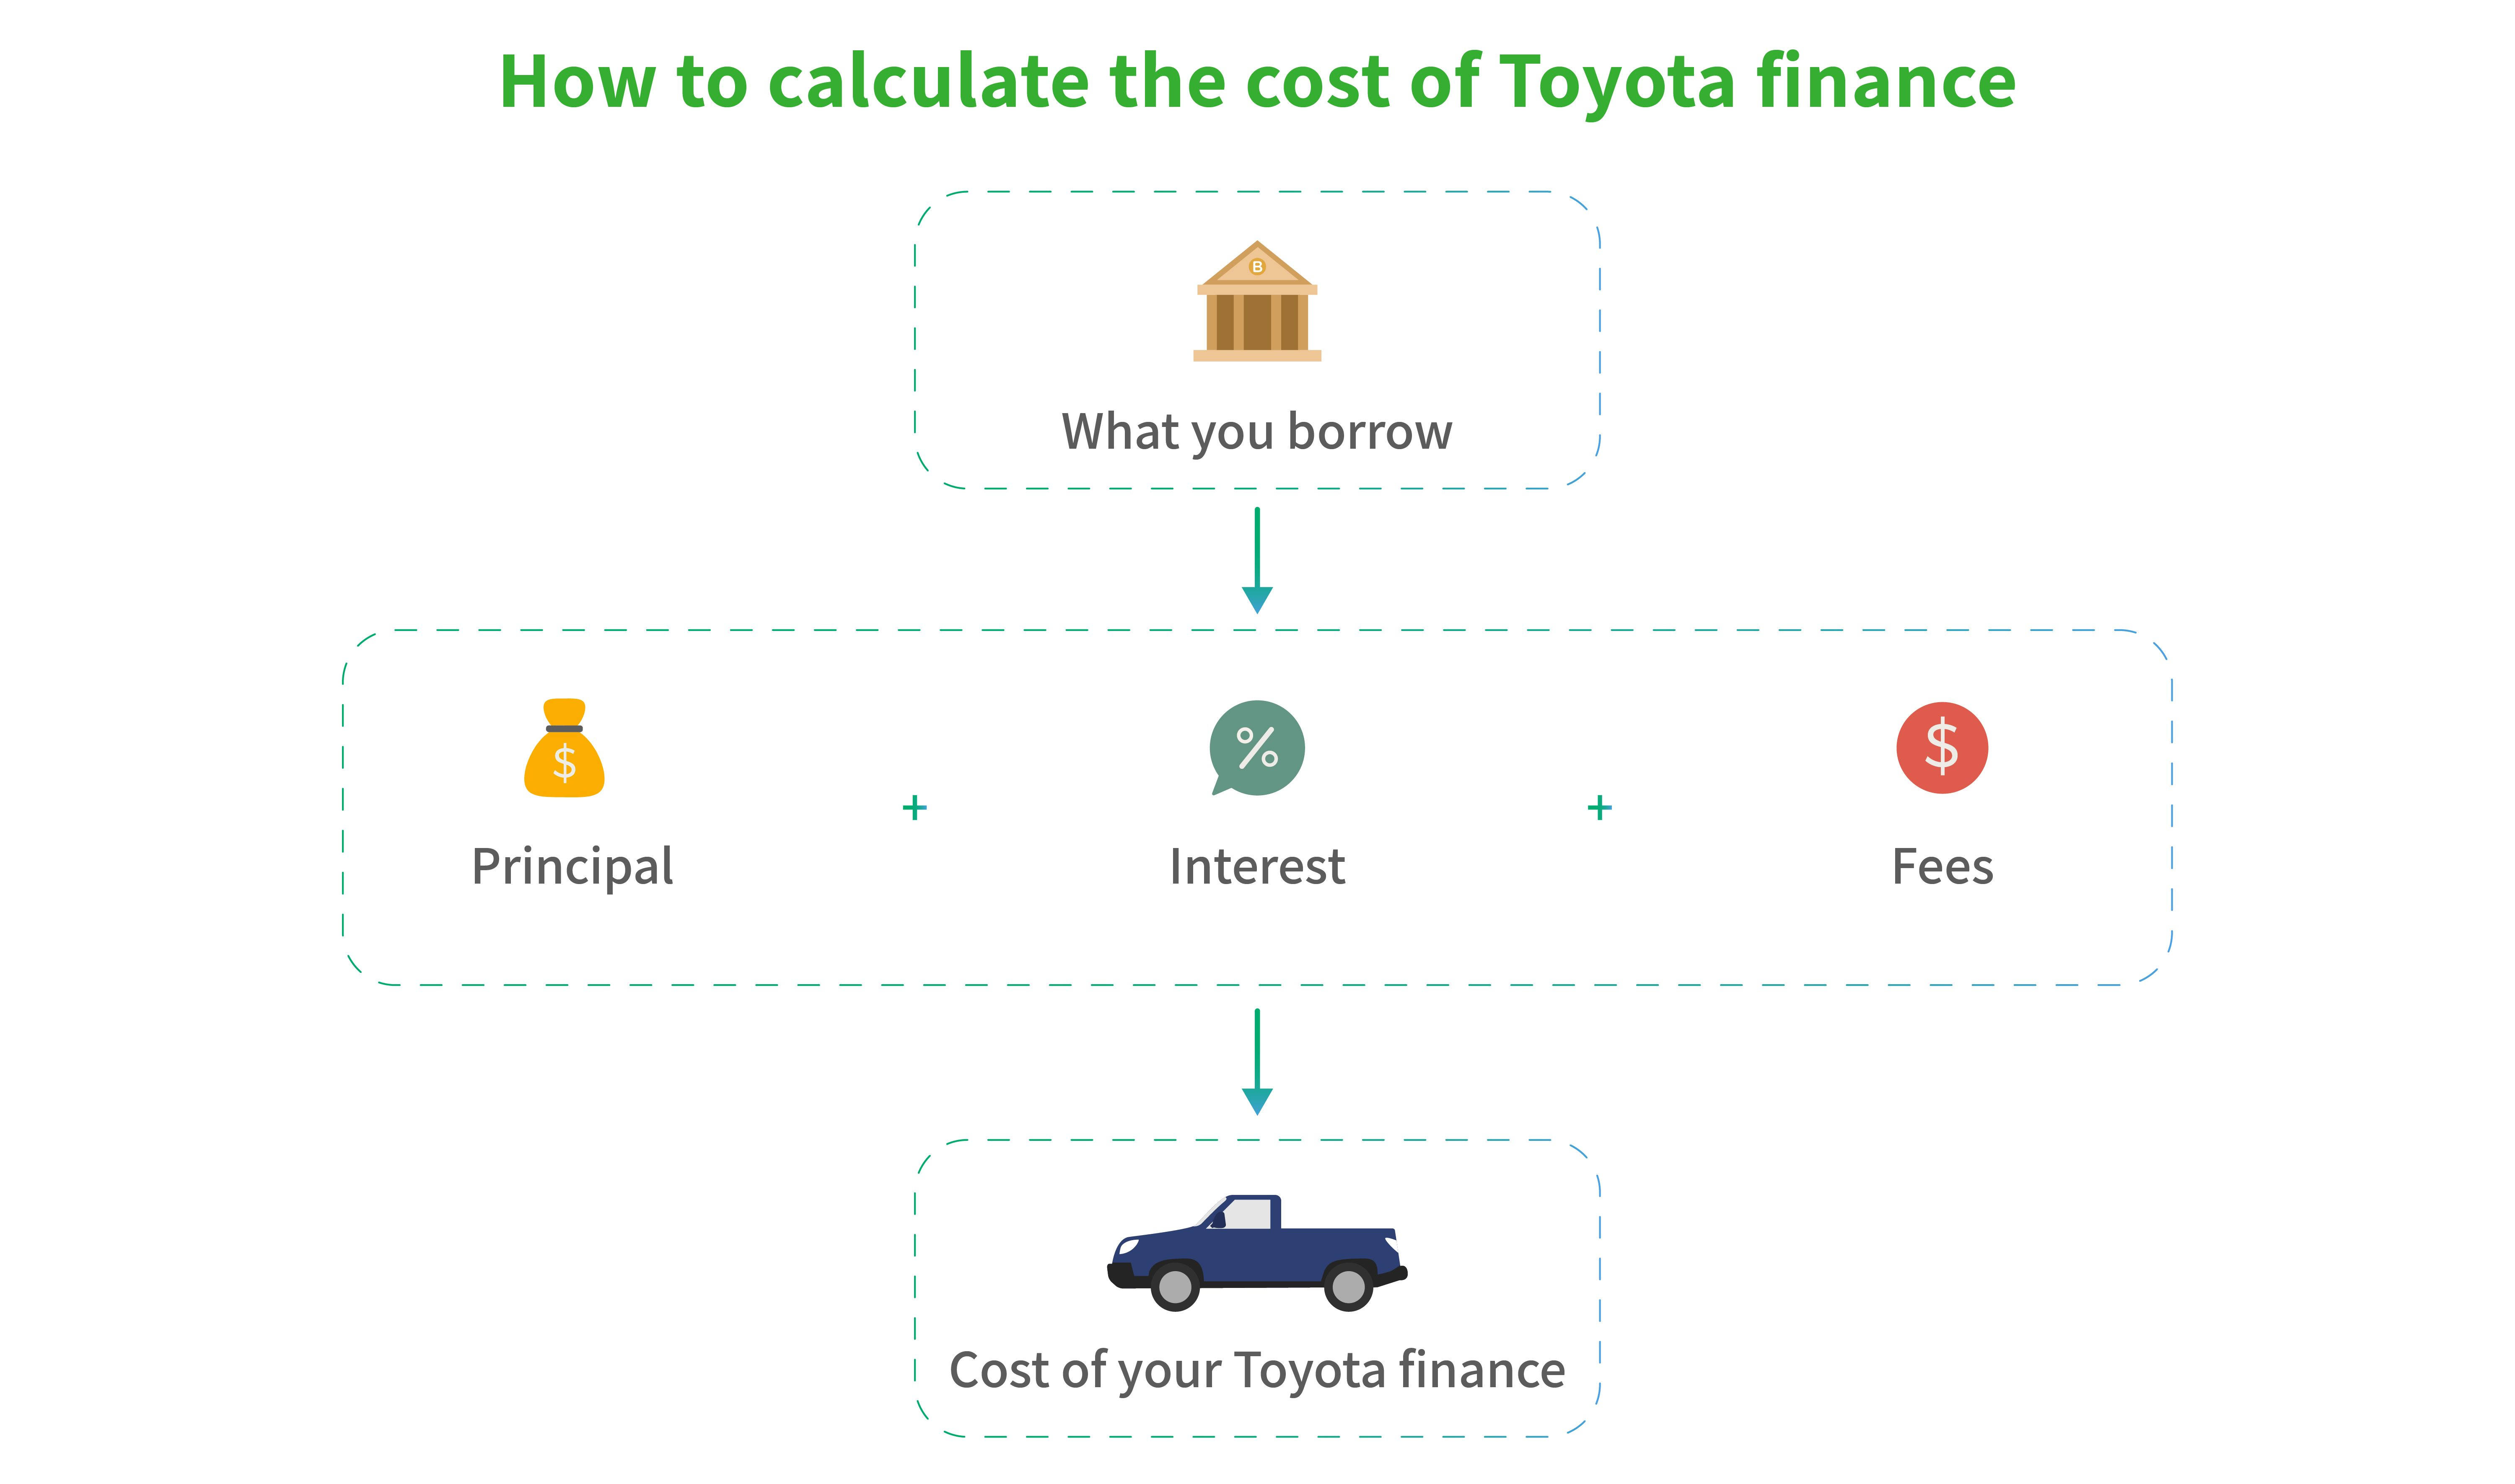 how to calculate the cost of Toyota finance graphic